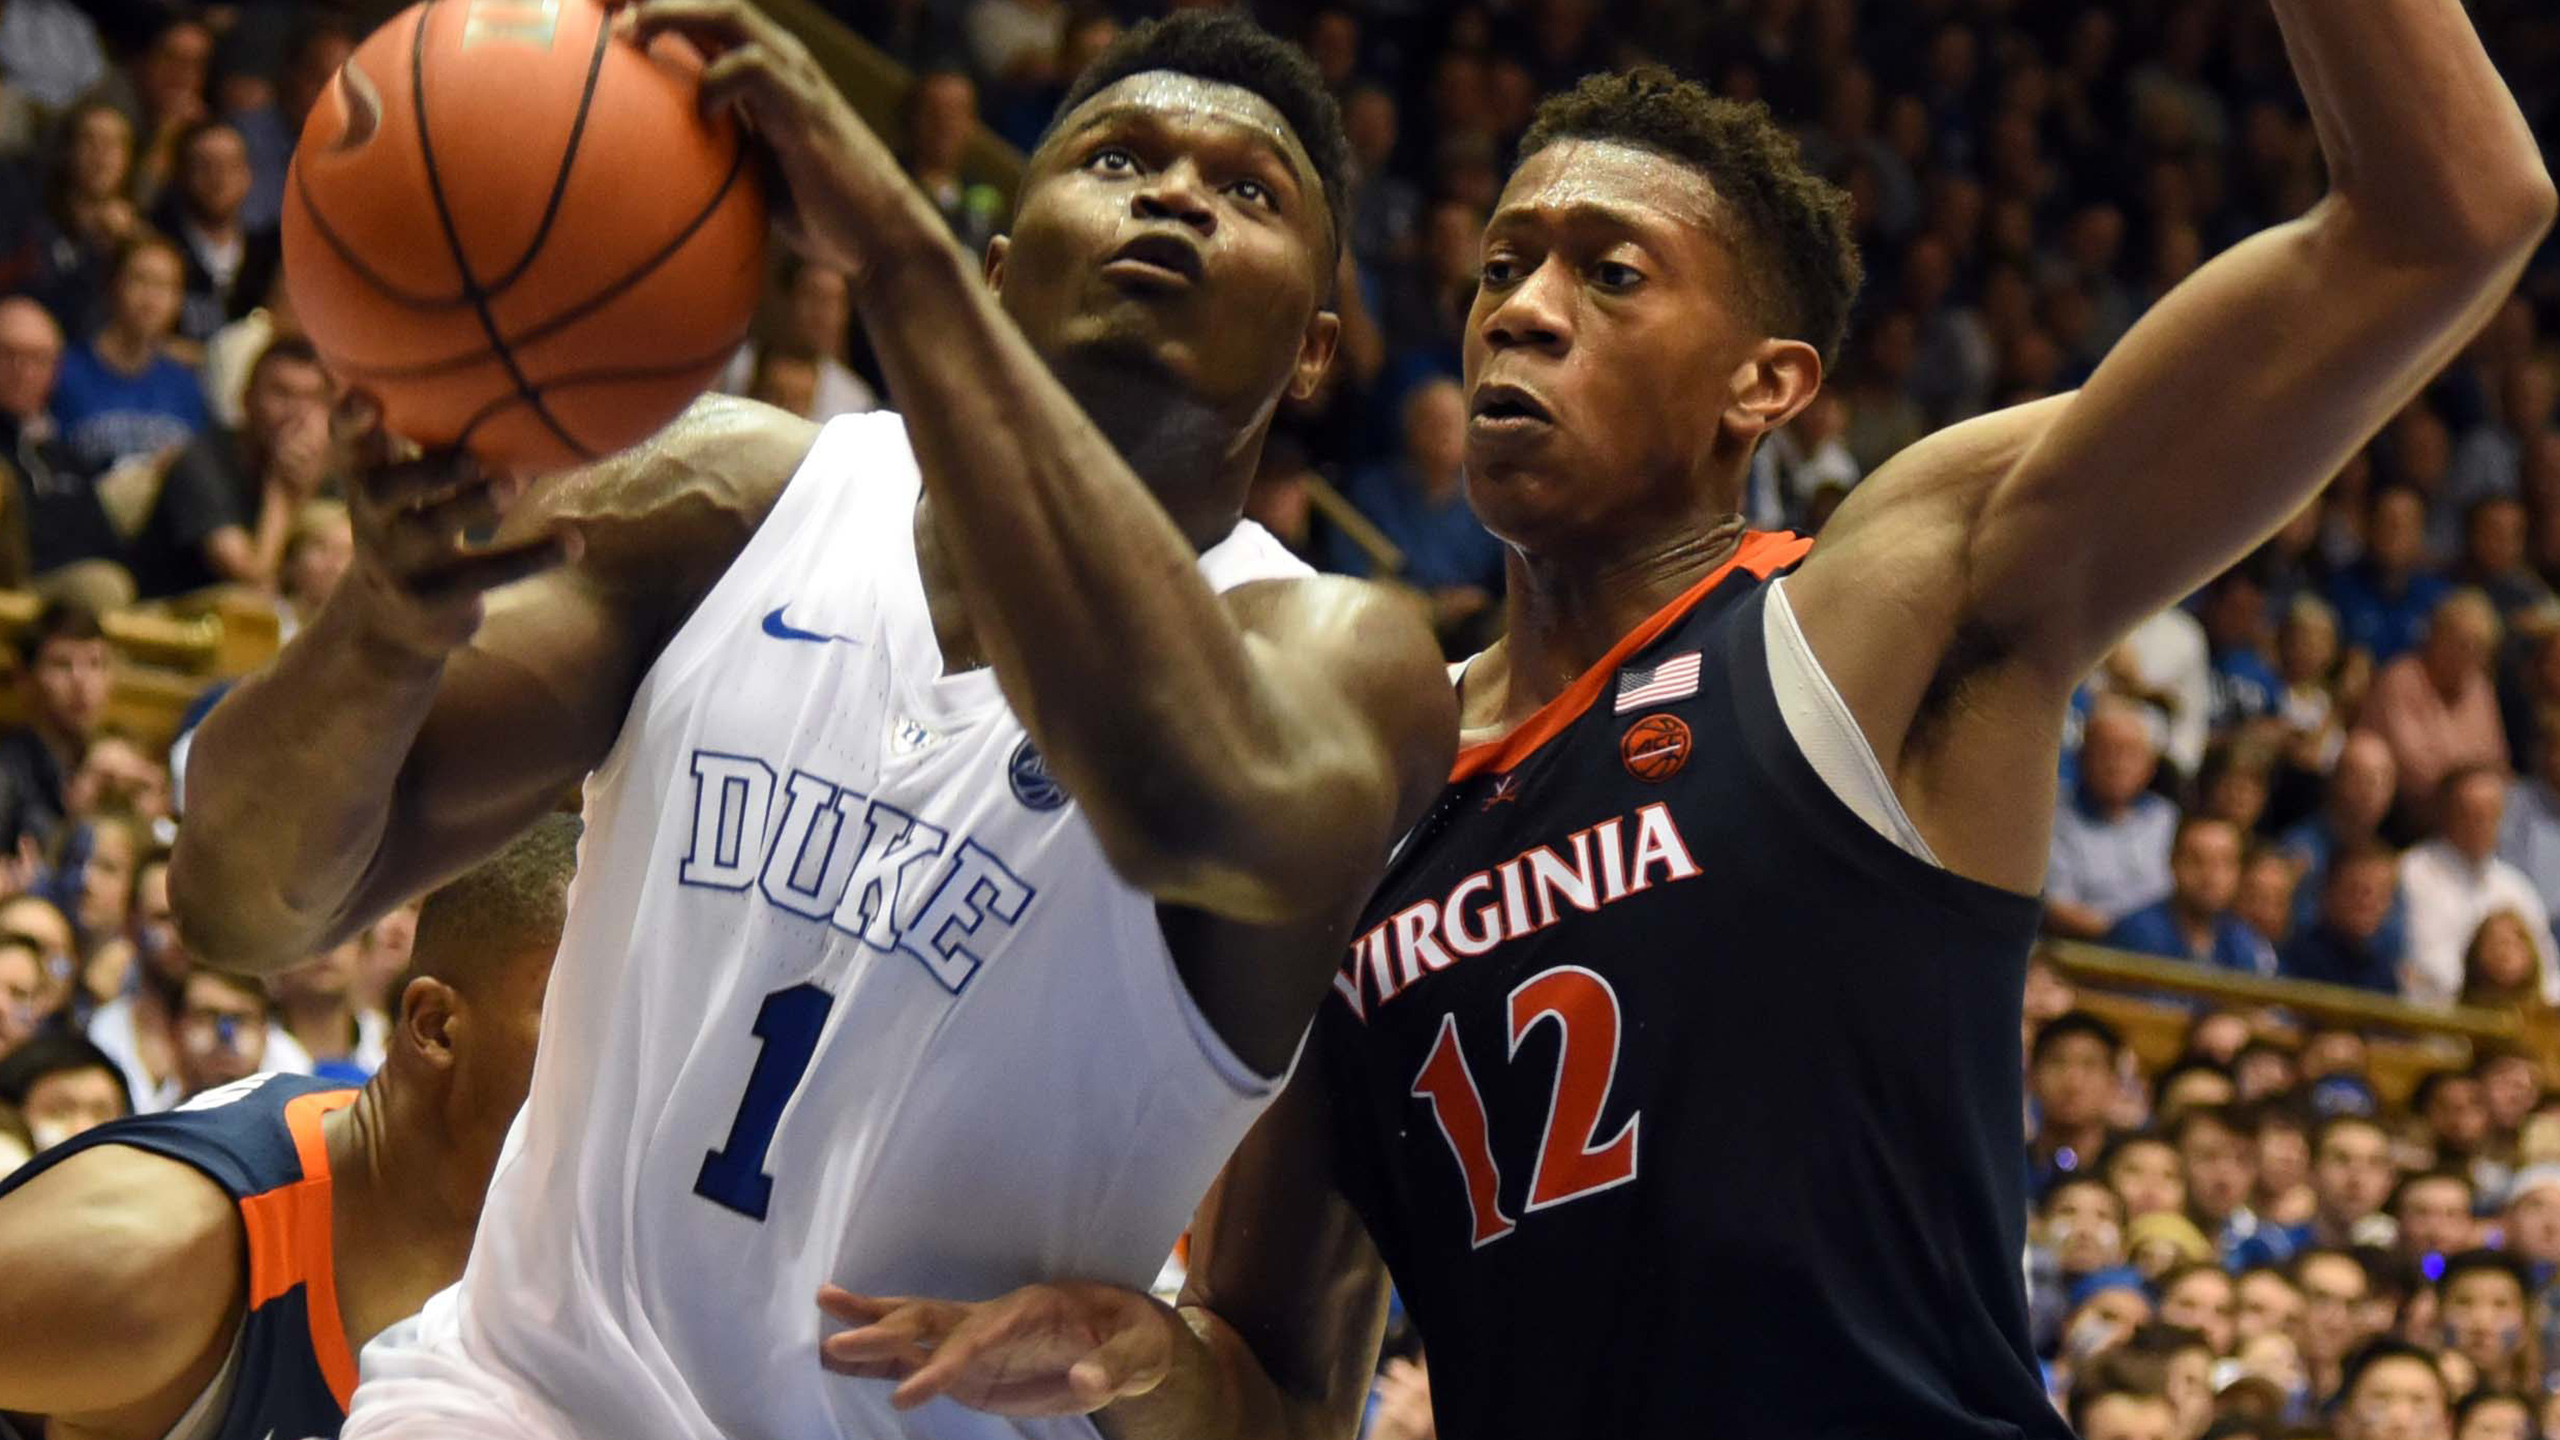 #4 Virginia vs. #1 Duke (re-air)